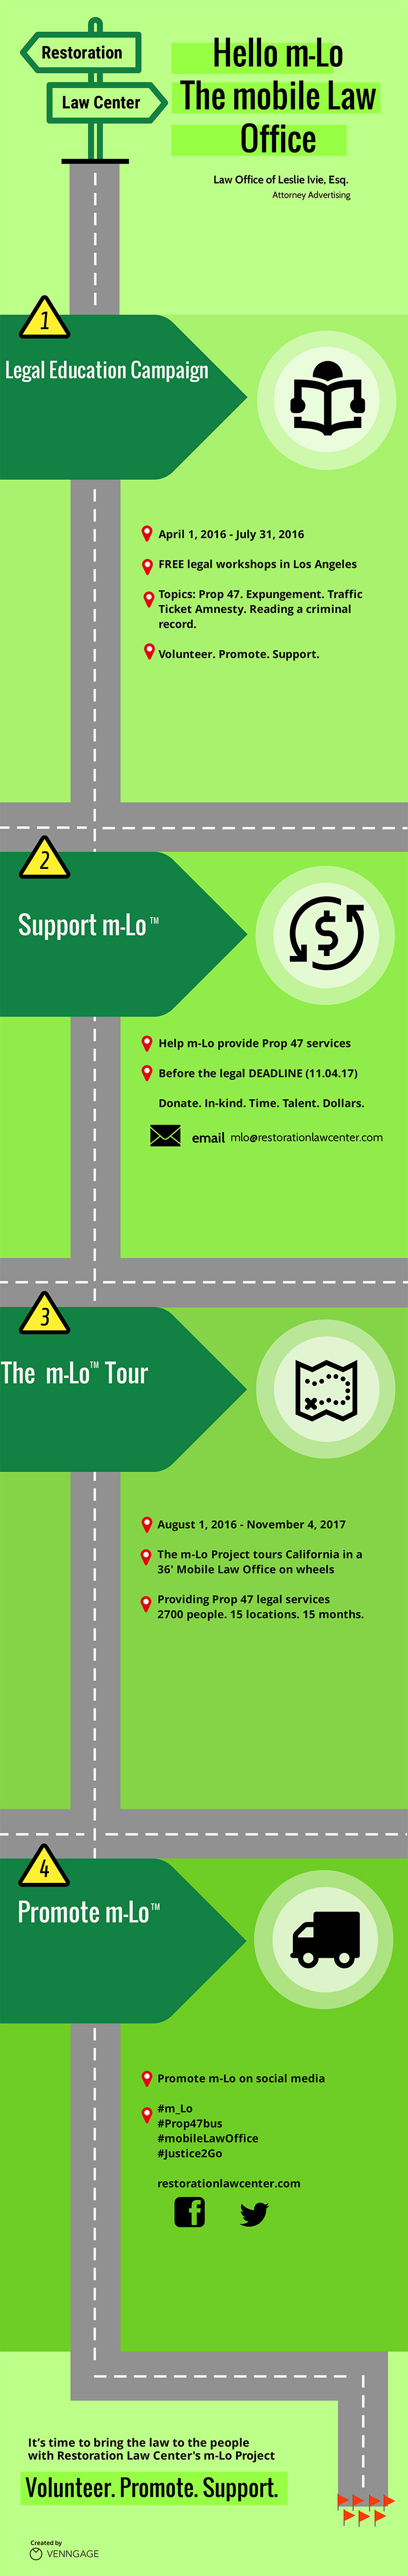 mlo-infographic